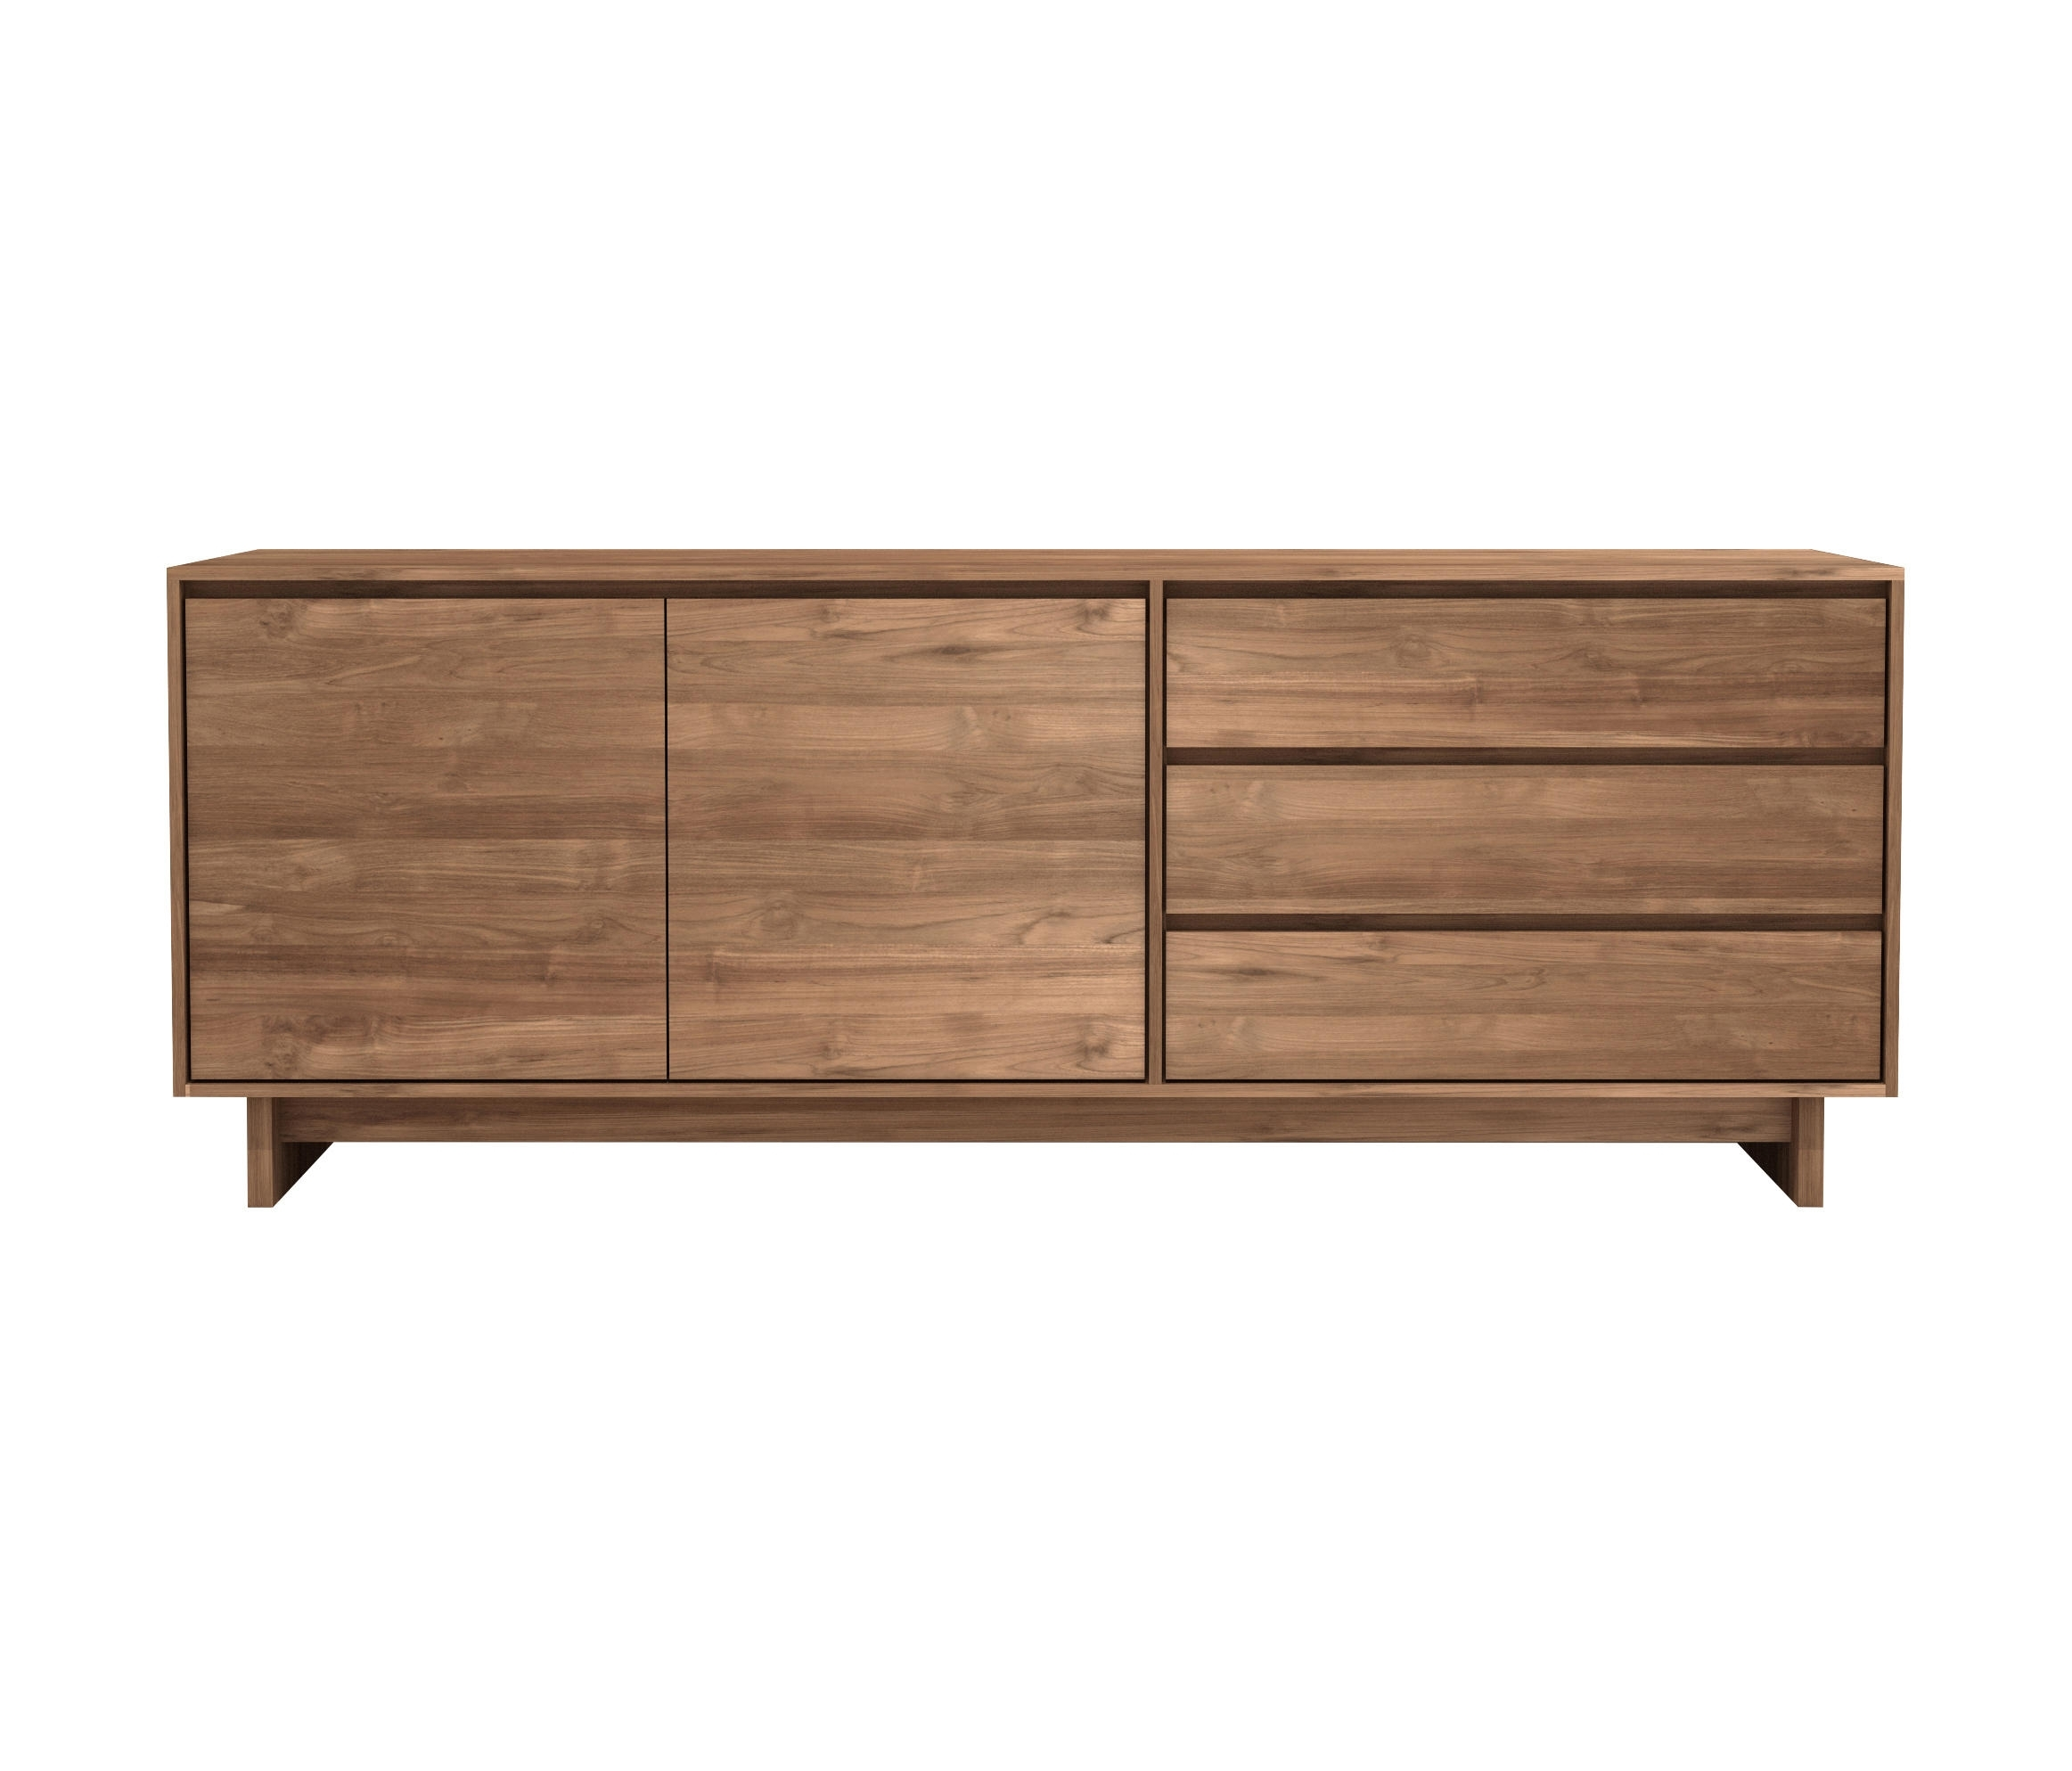 Inspiration about Teak Wave Sideboard – Sideboards From Ethnicraft | Architonic Intended For Most Up To Date Calhoun Sideboards (#5 of 20)